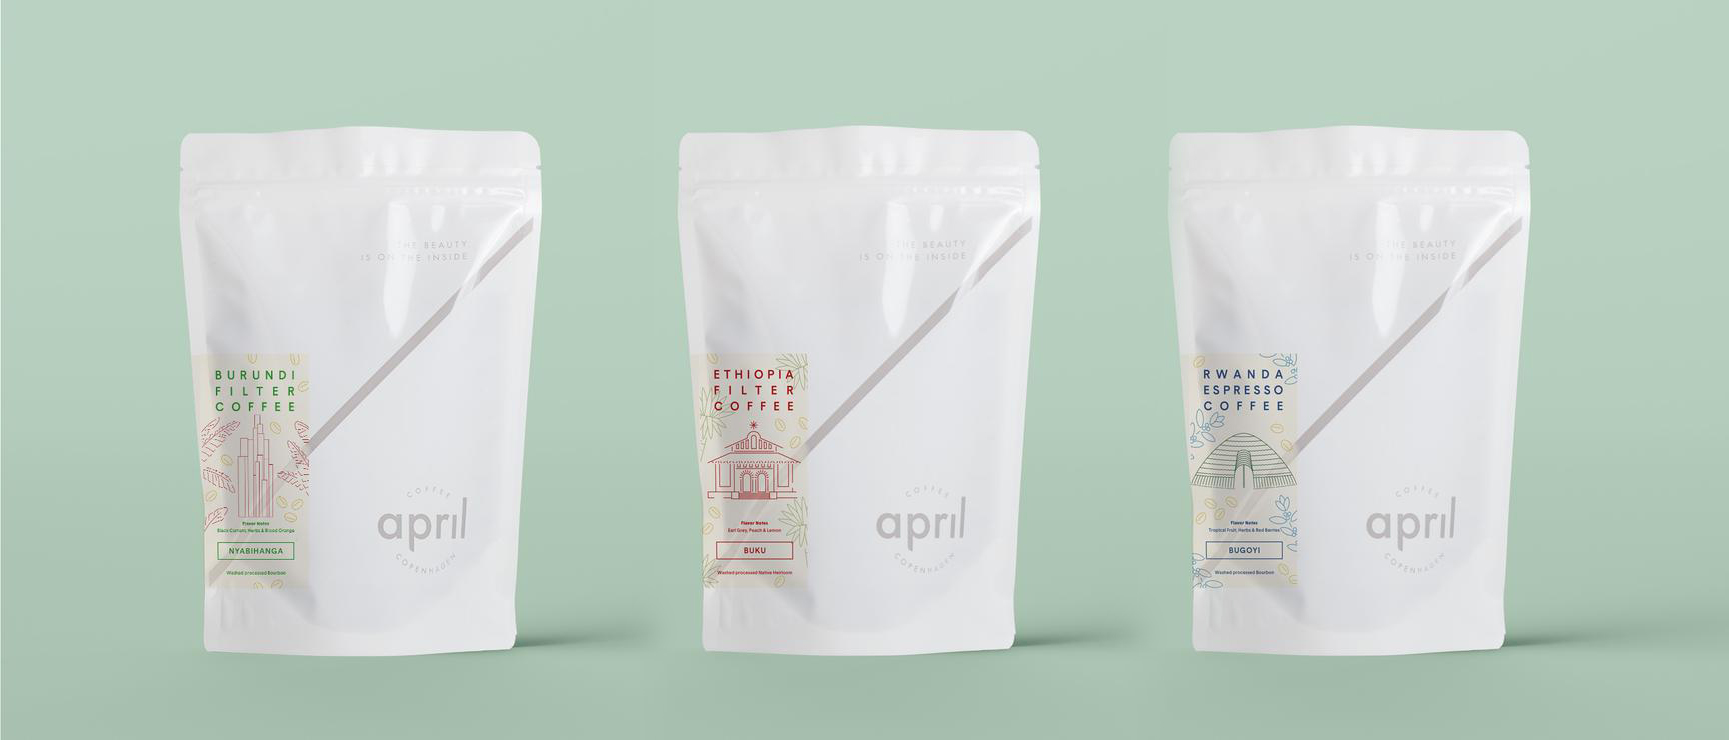 april-coffee-roasters-copenhagen-design-by-max-duchardt-m-a-a-x-branding-packaging-all